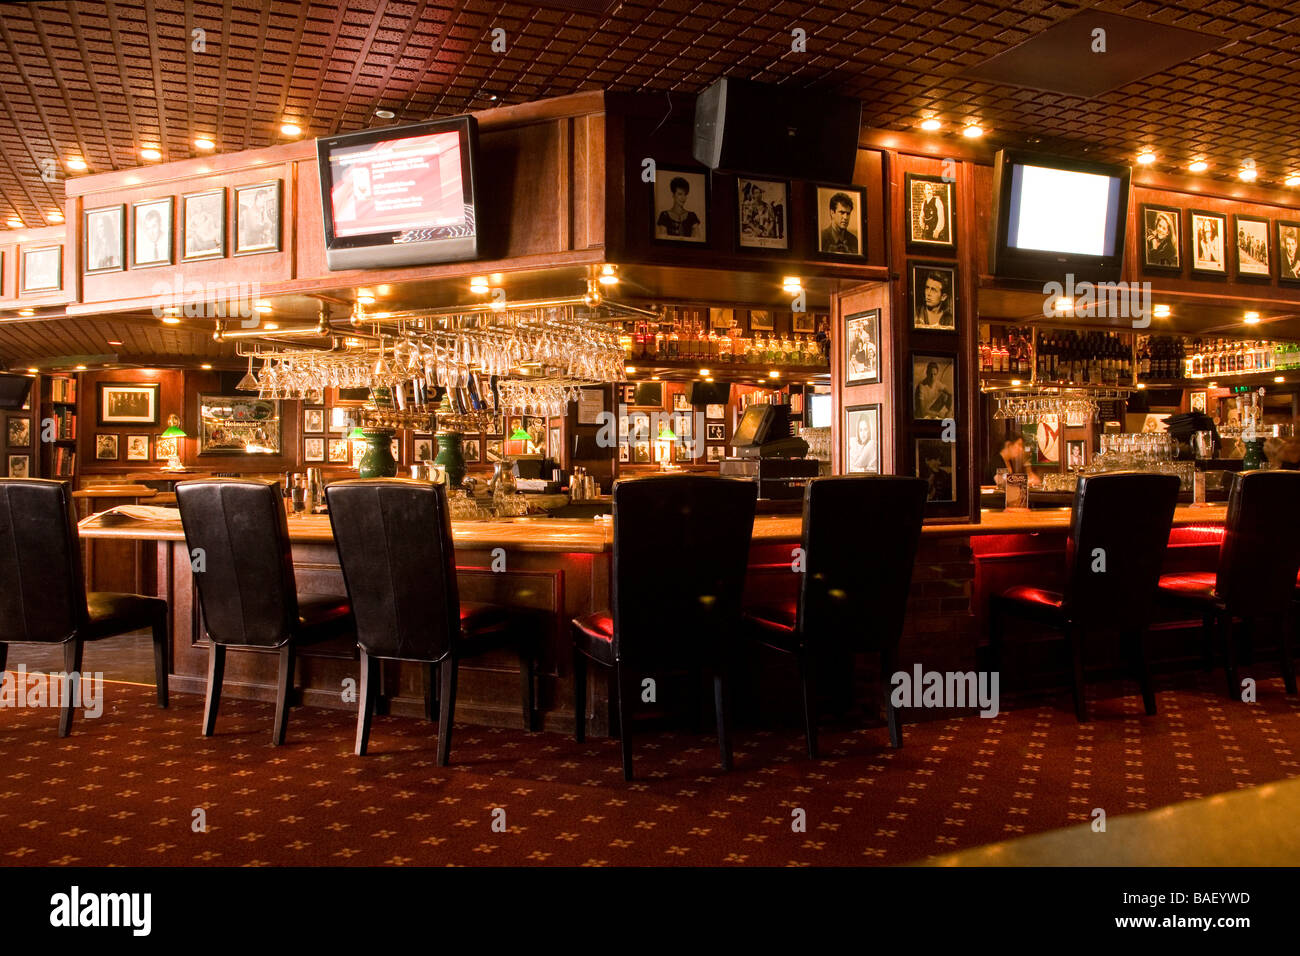 Sports Bar Interior   Flagstaff  Arizona Stock Photo  23686137   Alamy Sports Bar Interior   Flagstaff  Arizona